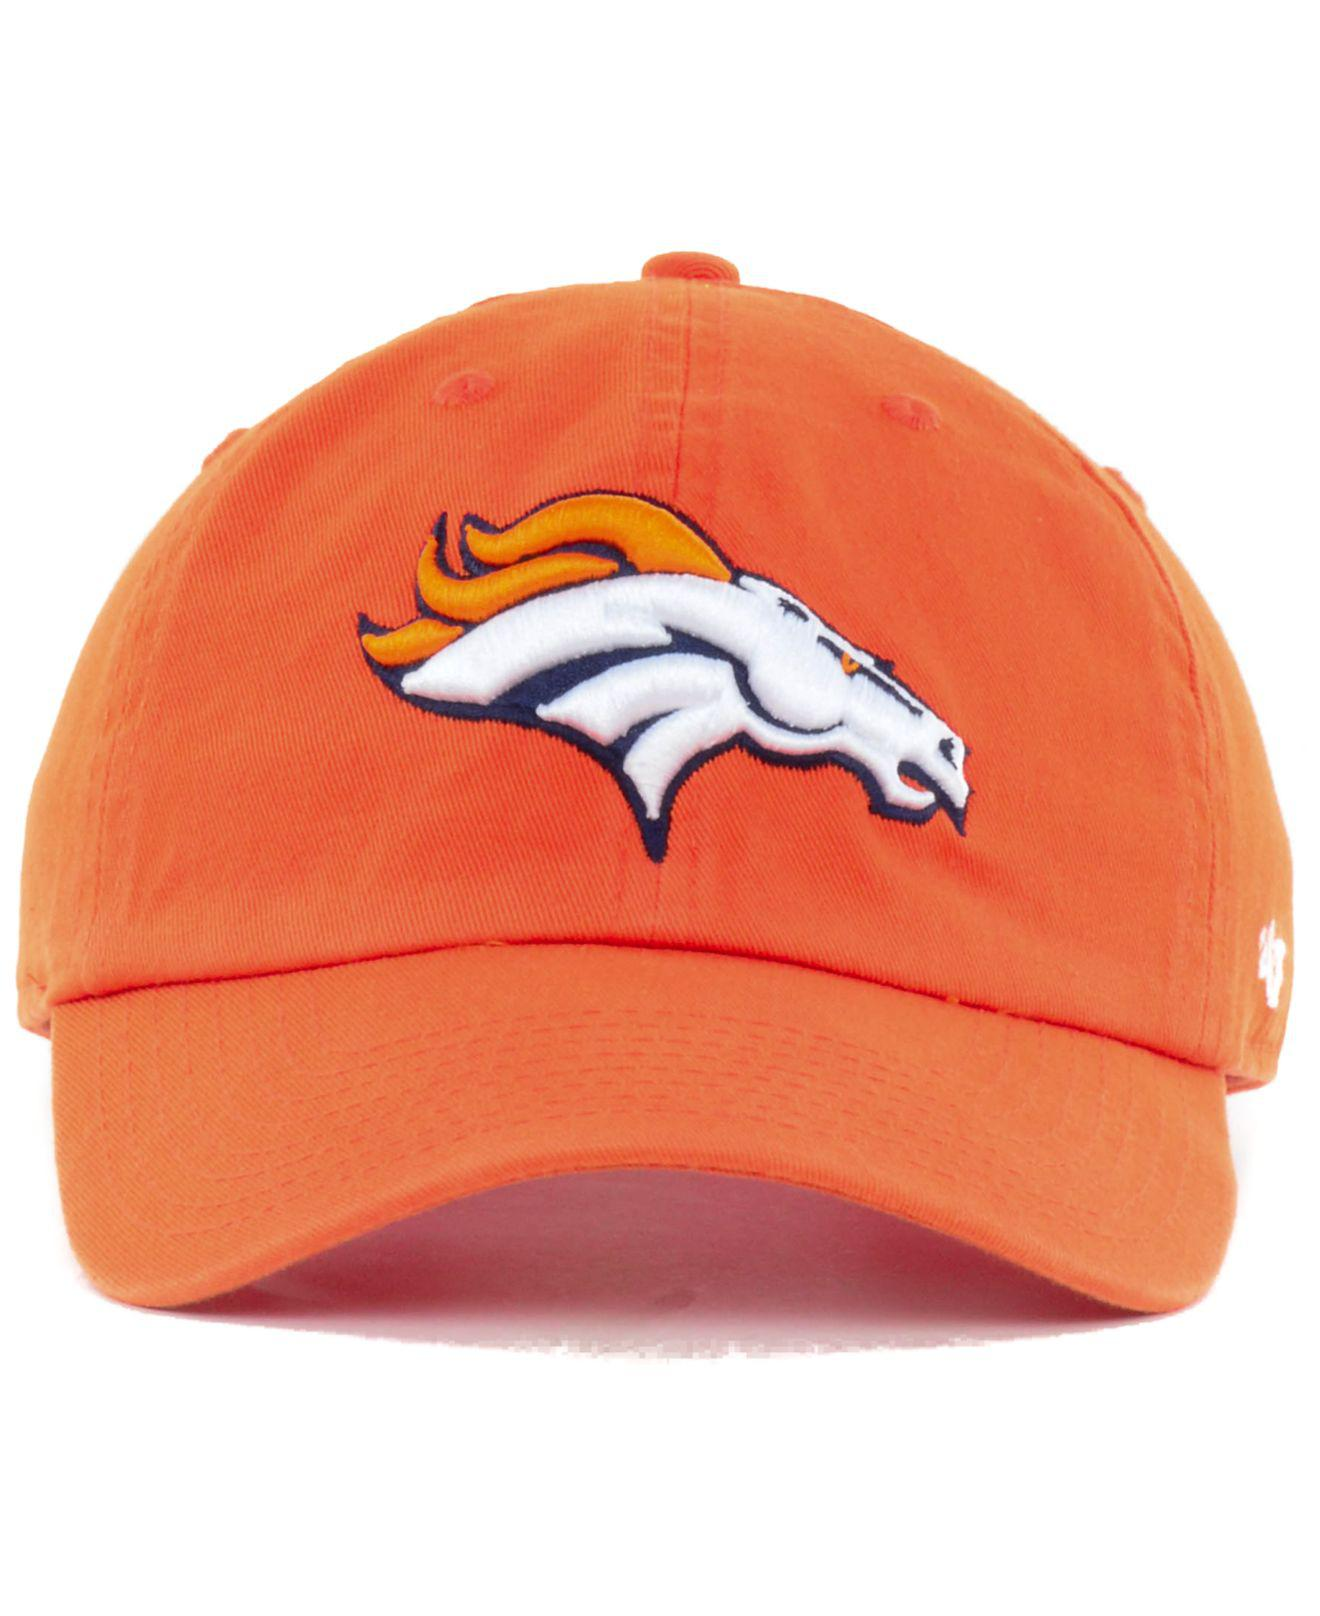 f475ca72a ... cheapest lyst 47 brand denver broncos clean up cap in orange for men  f60ef 5a937